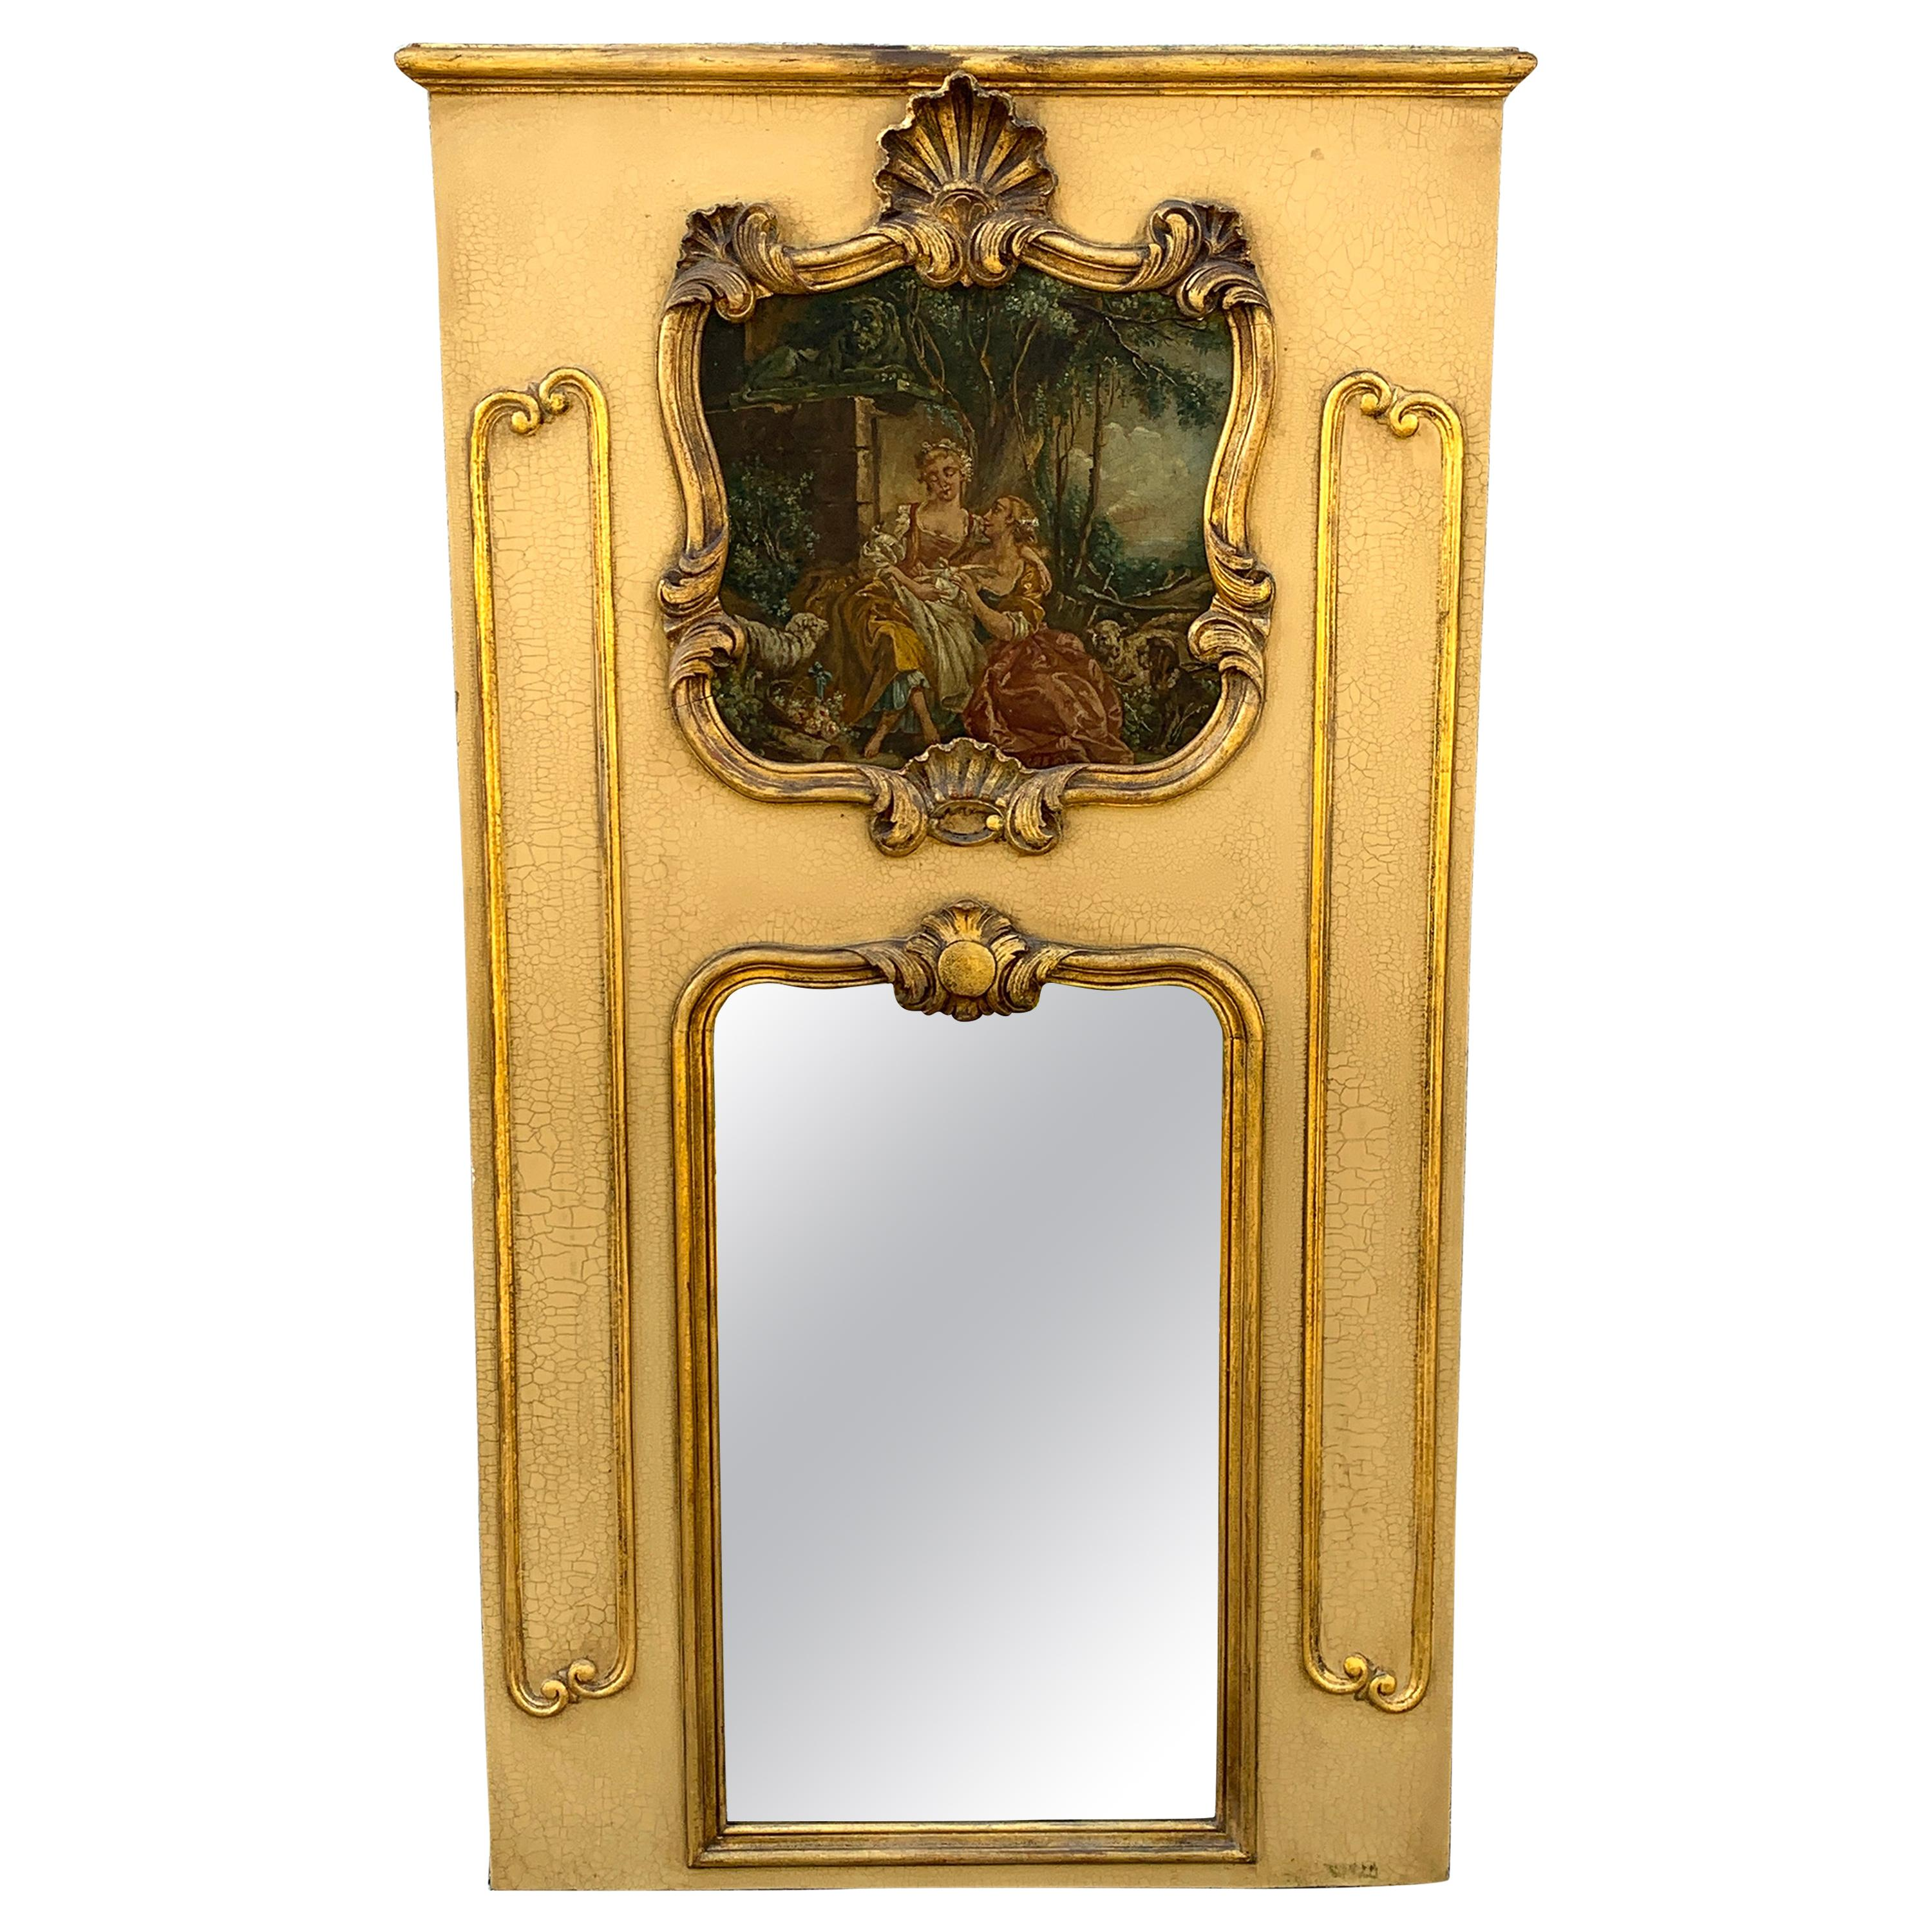 Antique French Painted Trumeau Mirror, With d'apres Boucher Painting